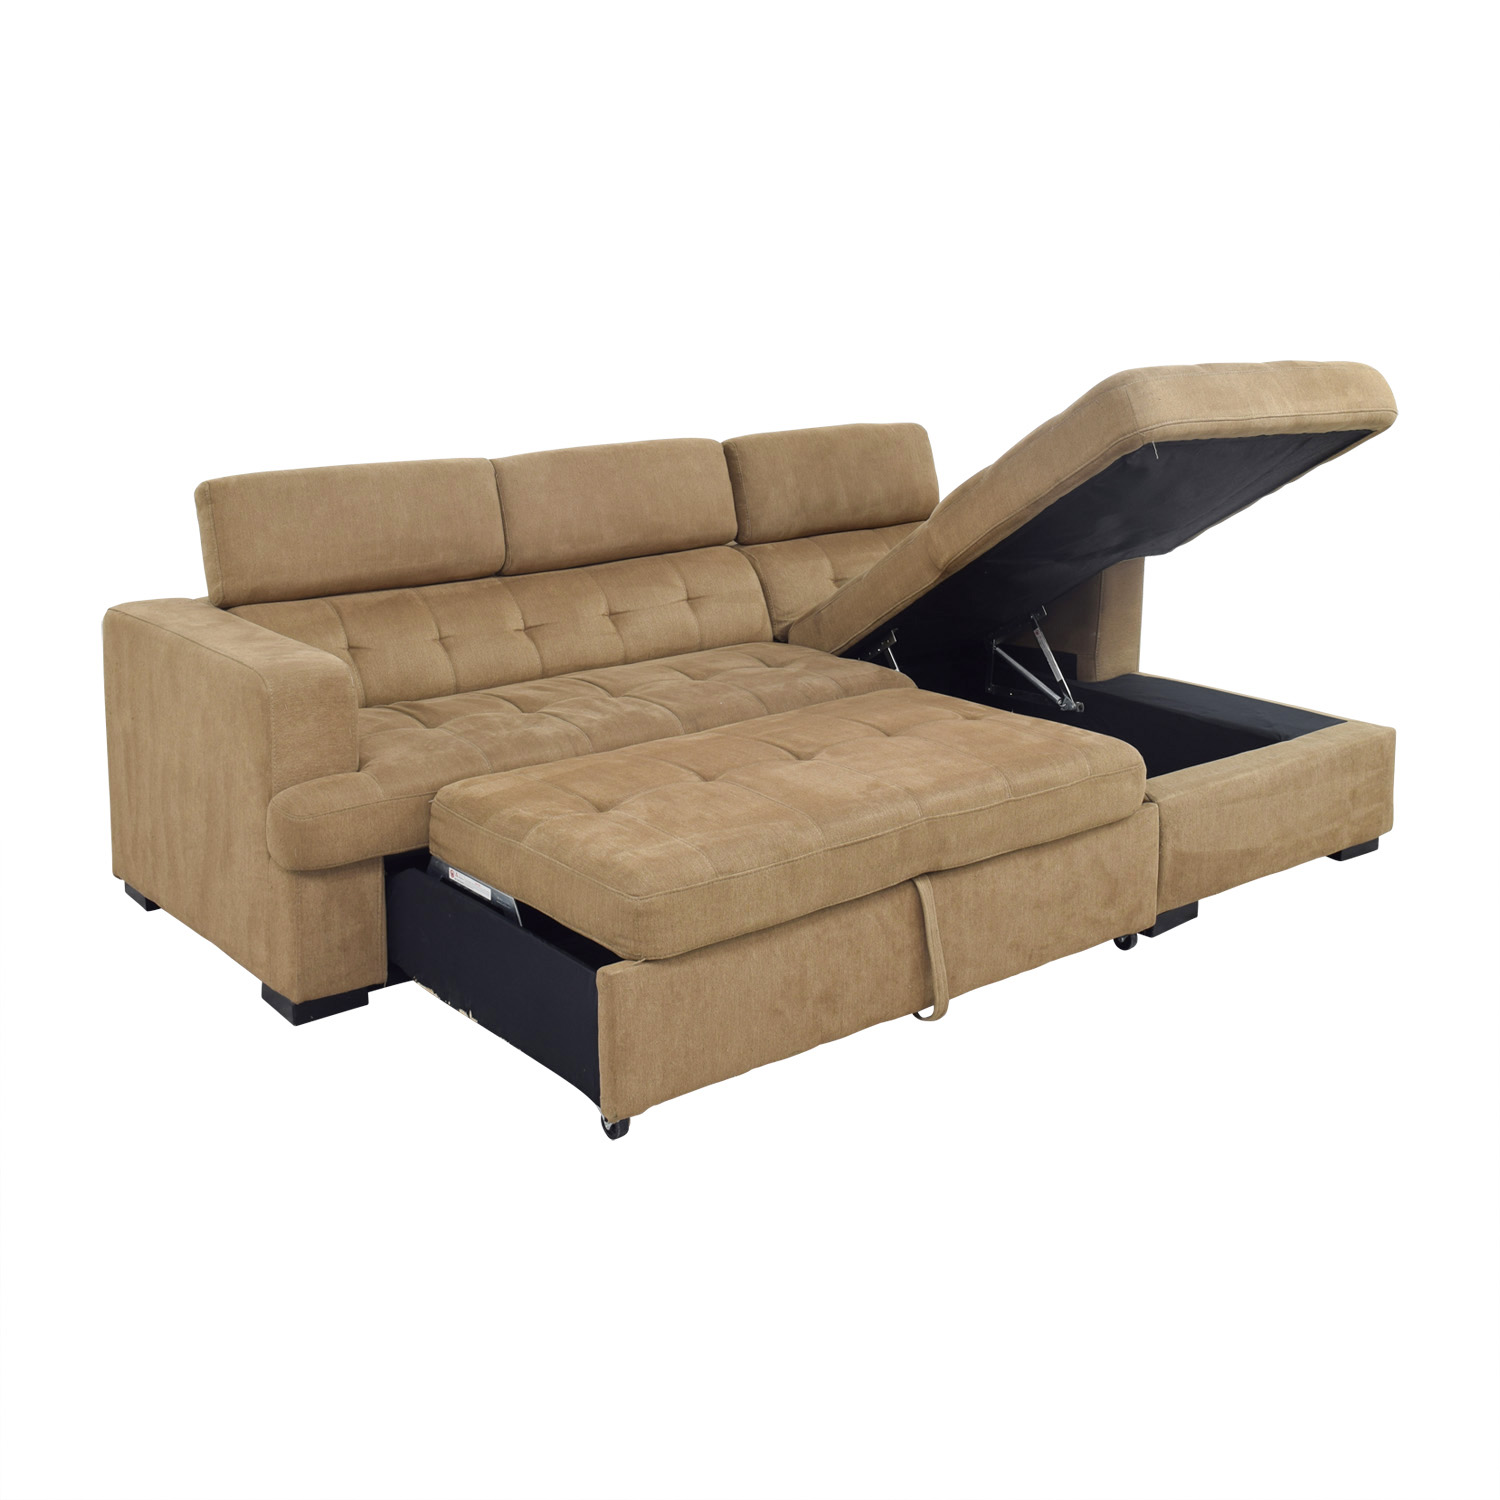 Furniture Store Cheap Prices: Bob's Furniture Bob's Furniture Brown Pull Out